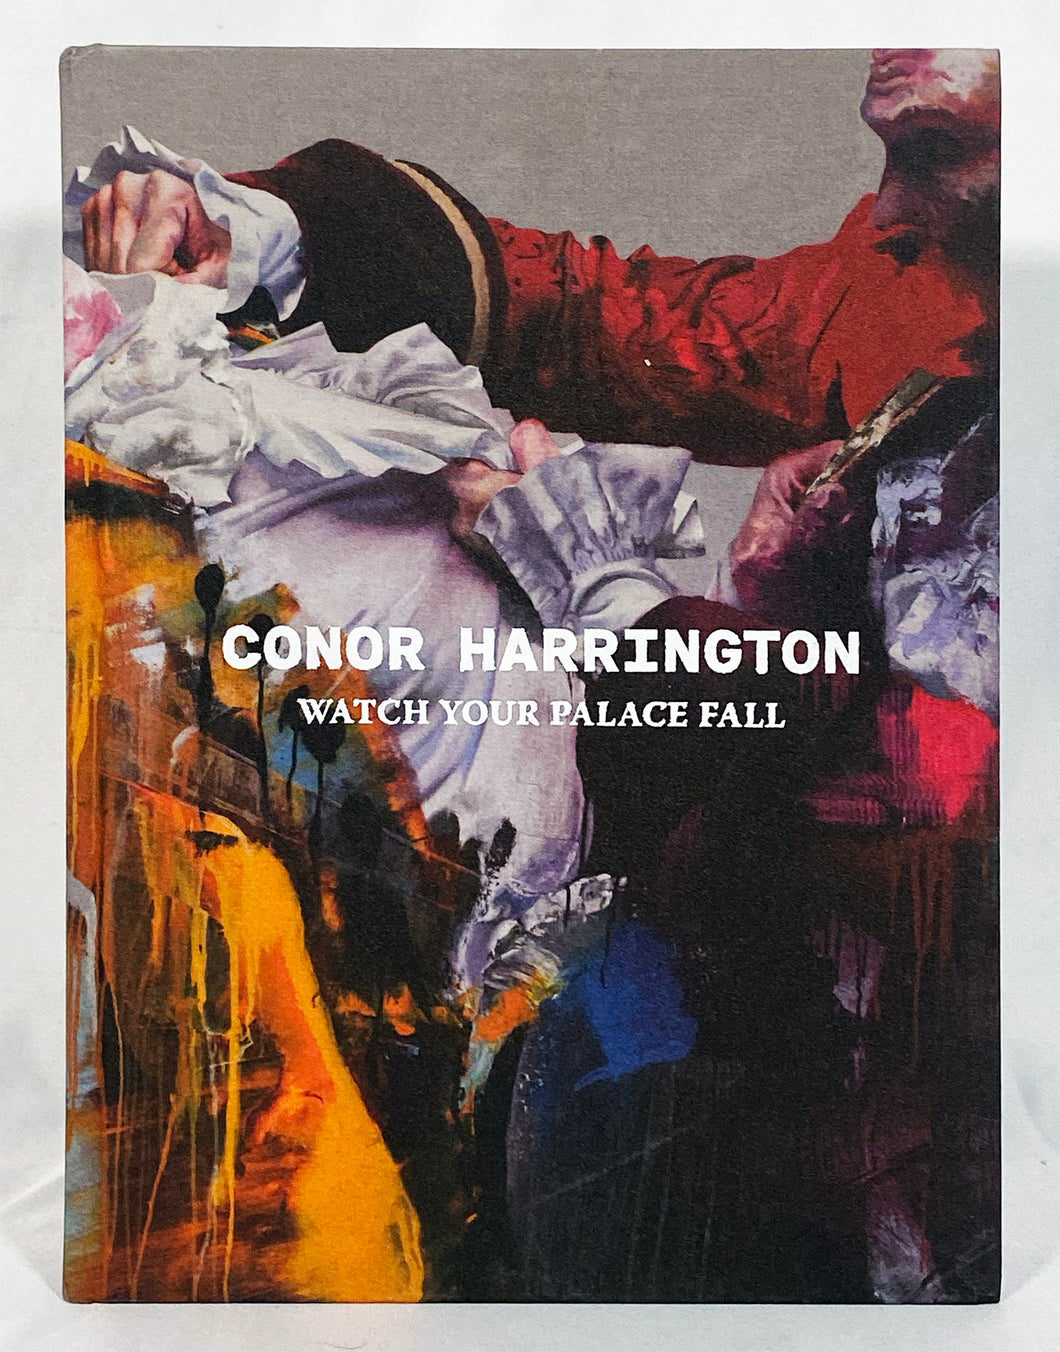 CONOR HARRINGTON 'Watch Your Palace Fall' Signed Book - Signari Gallery